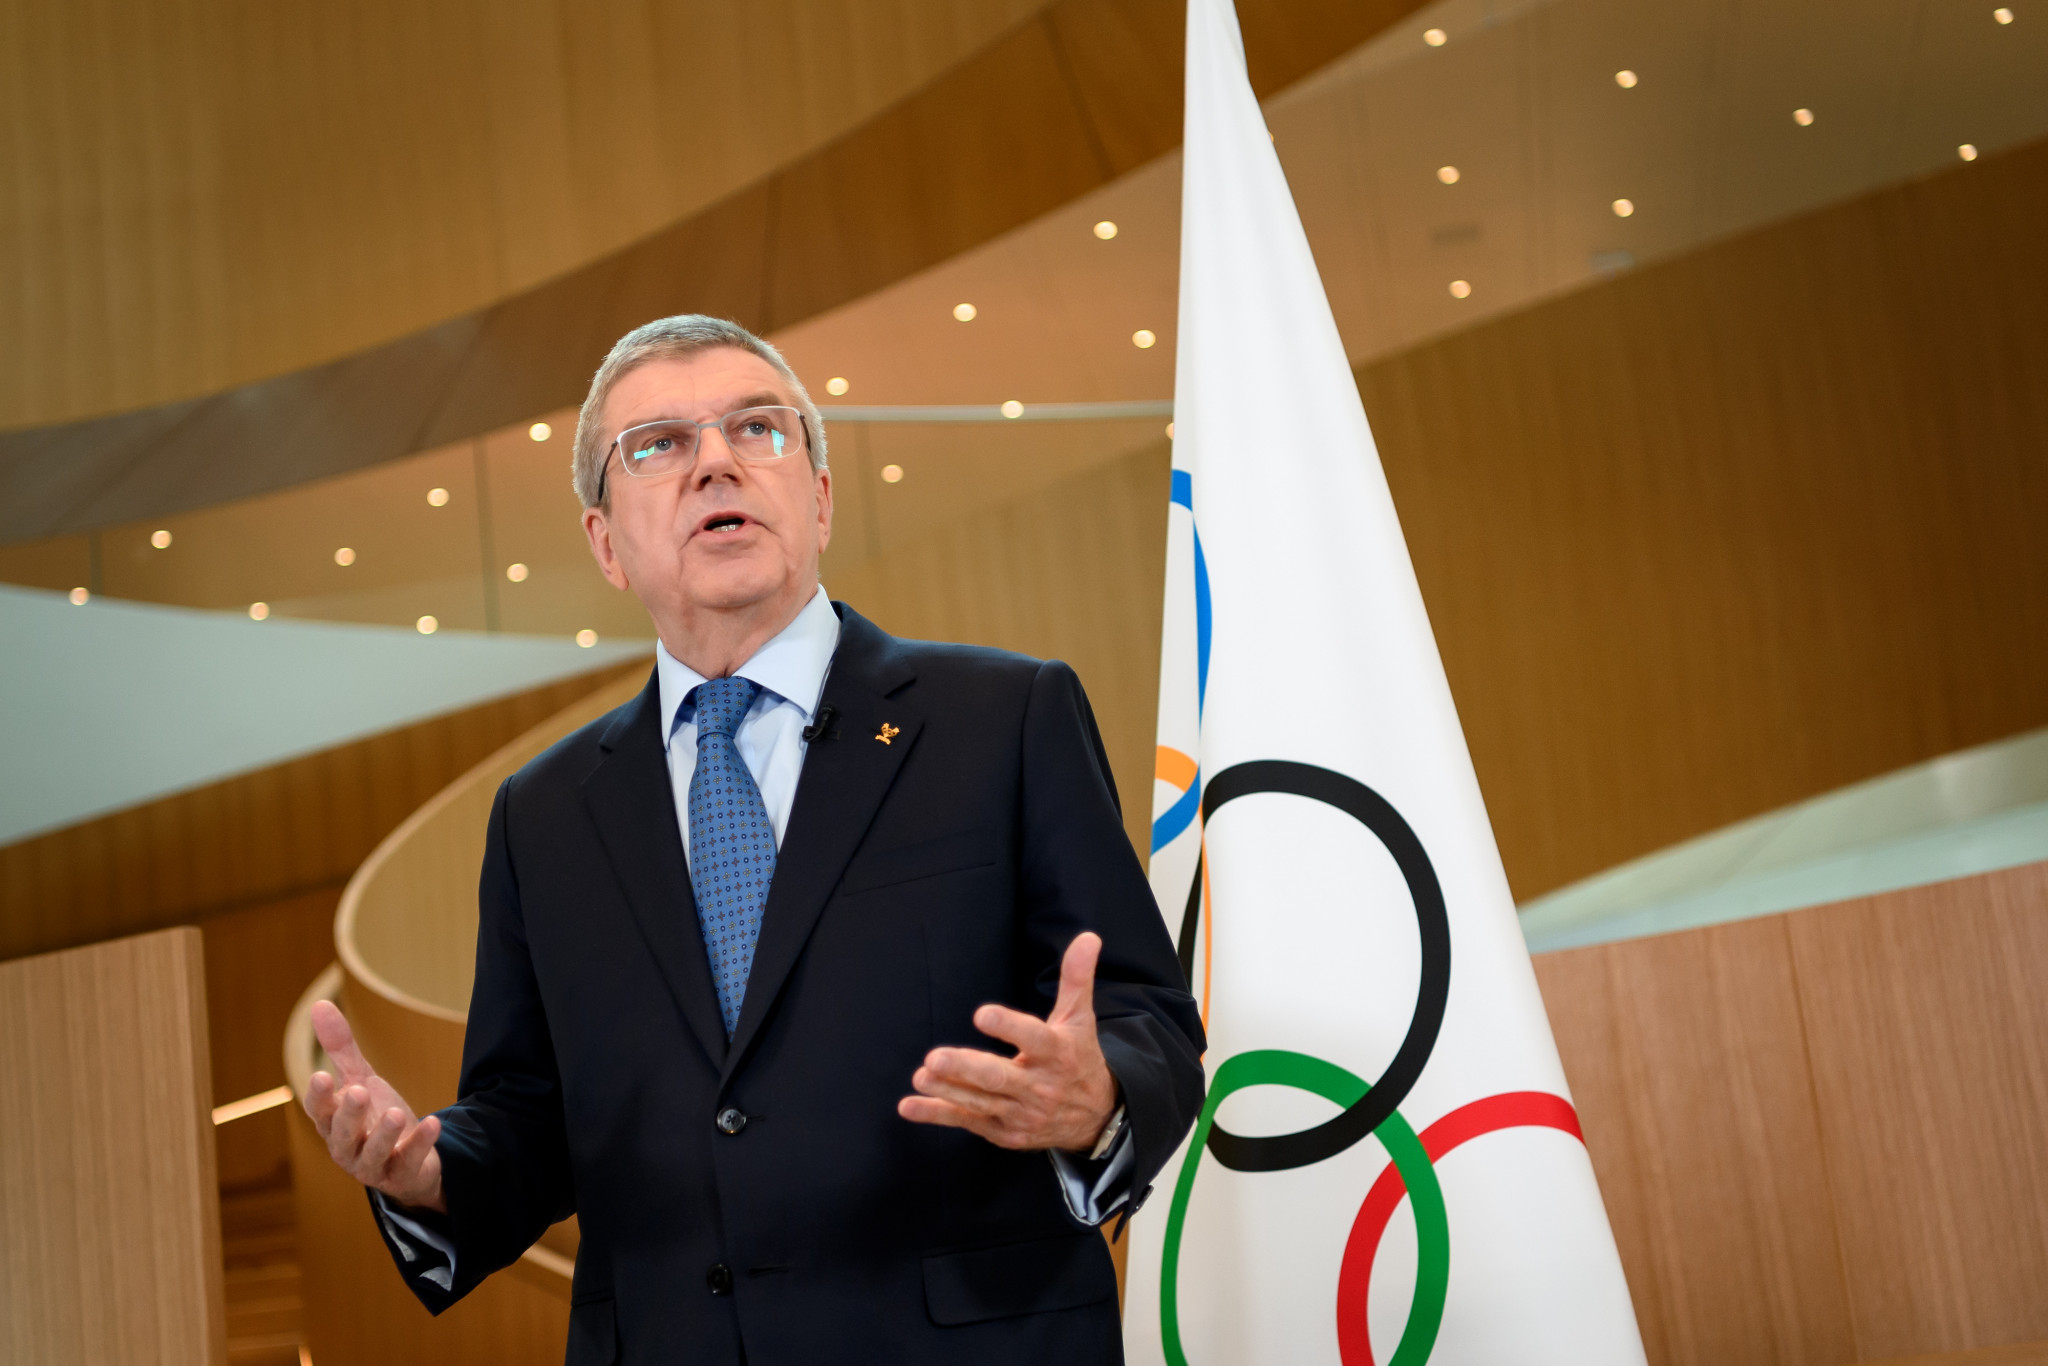 """Bach calls for Olympic Movement to look into """"proliferation of sports events"""" post-pandemic"""